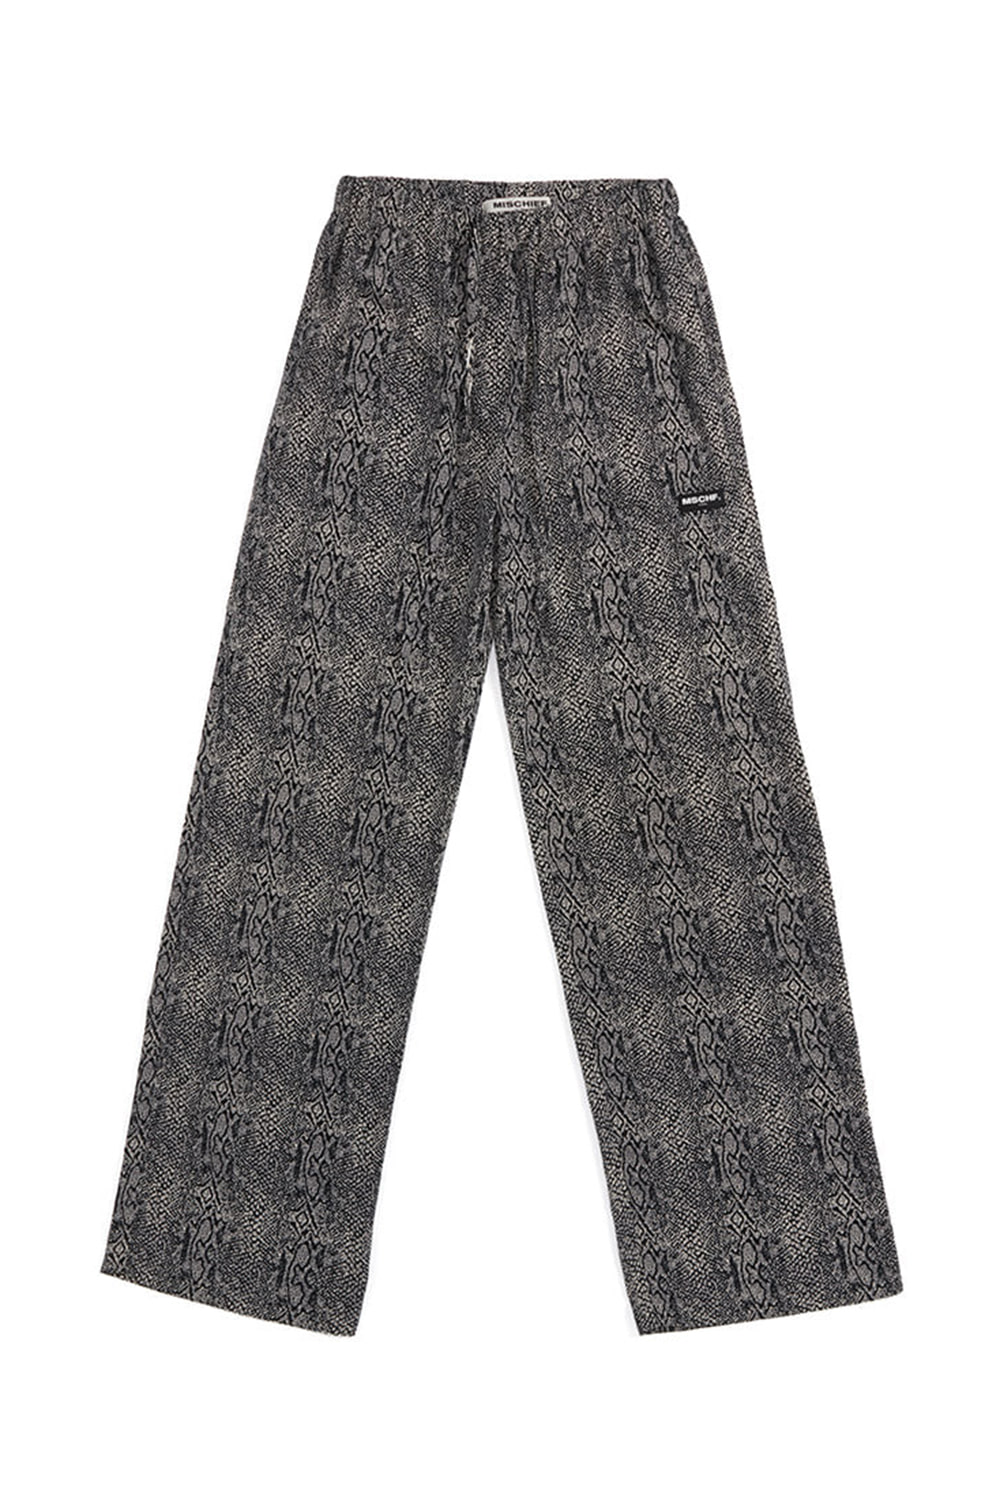 DRAWSTRING TROUSERS_black/white python